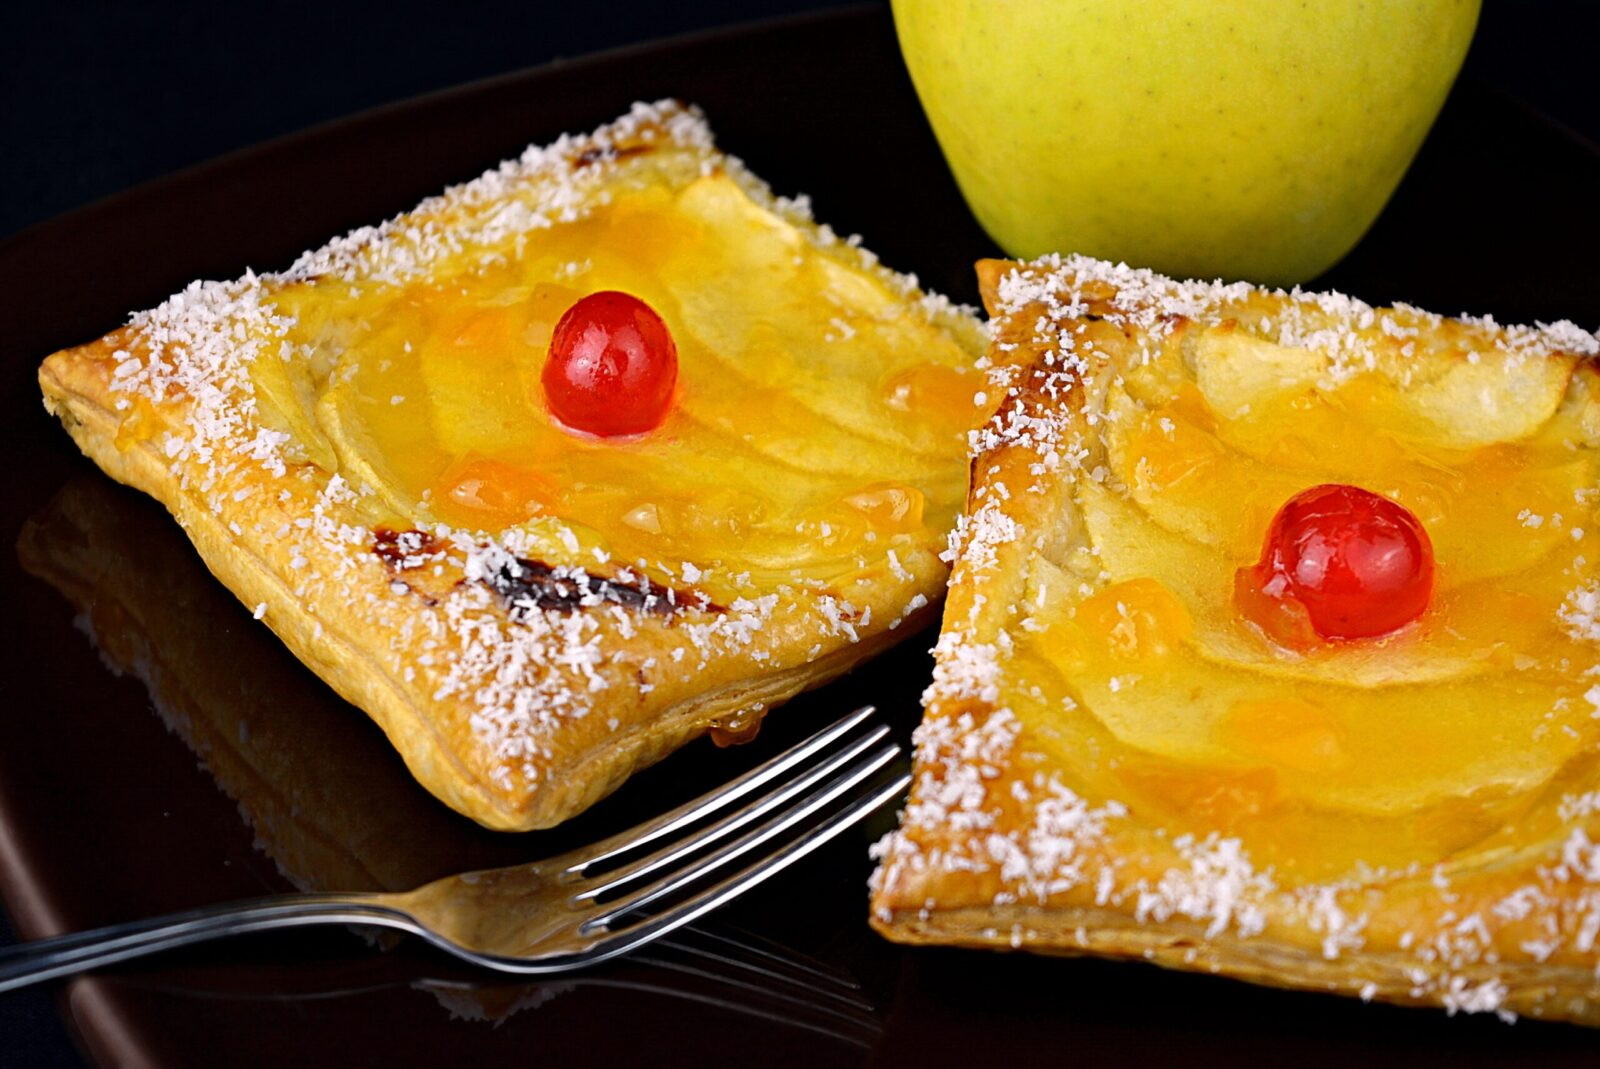 Recipe for making apple cakes and cream